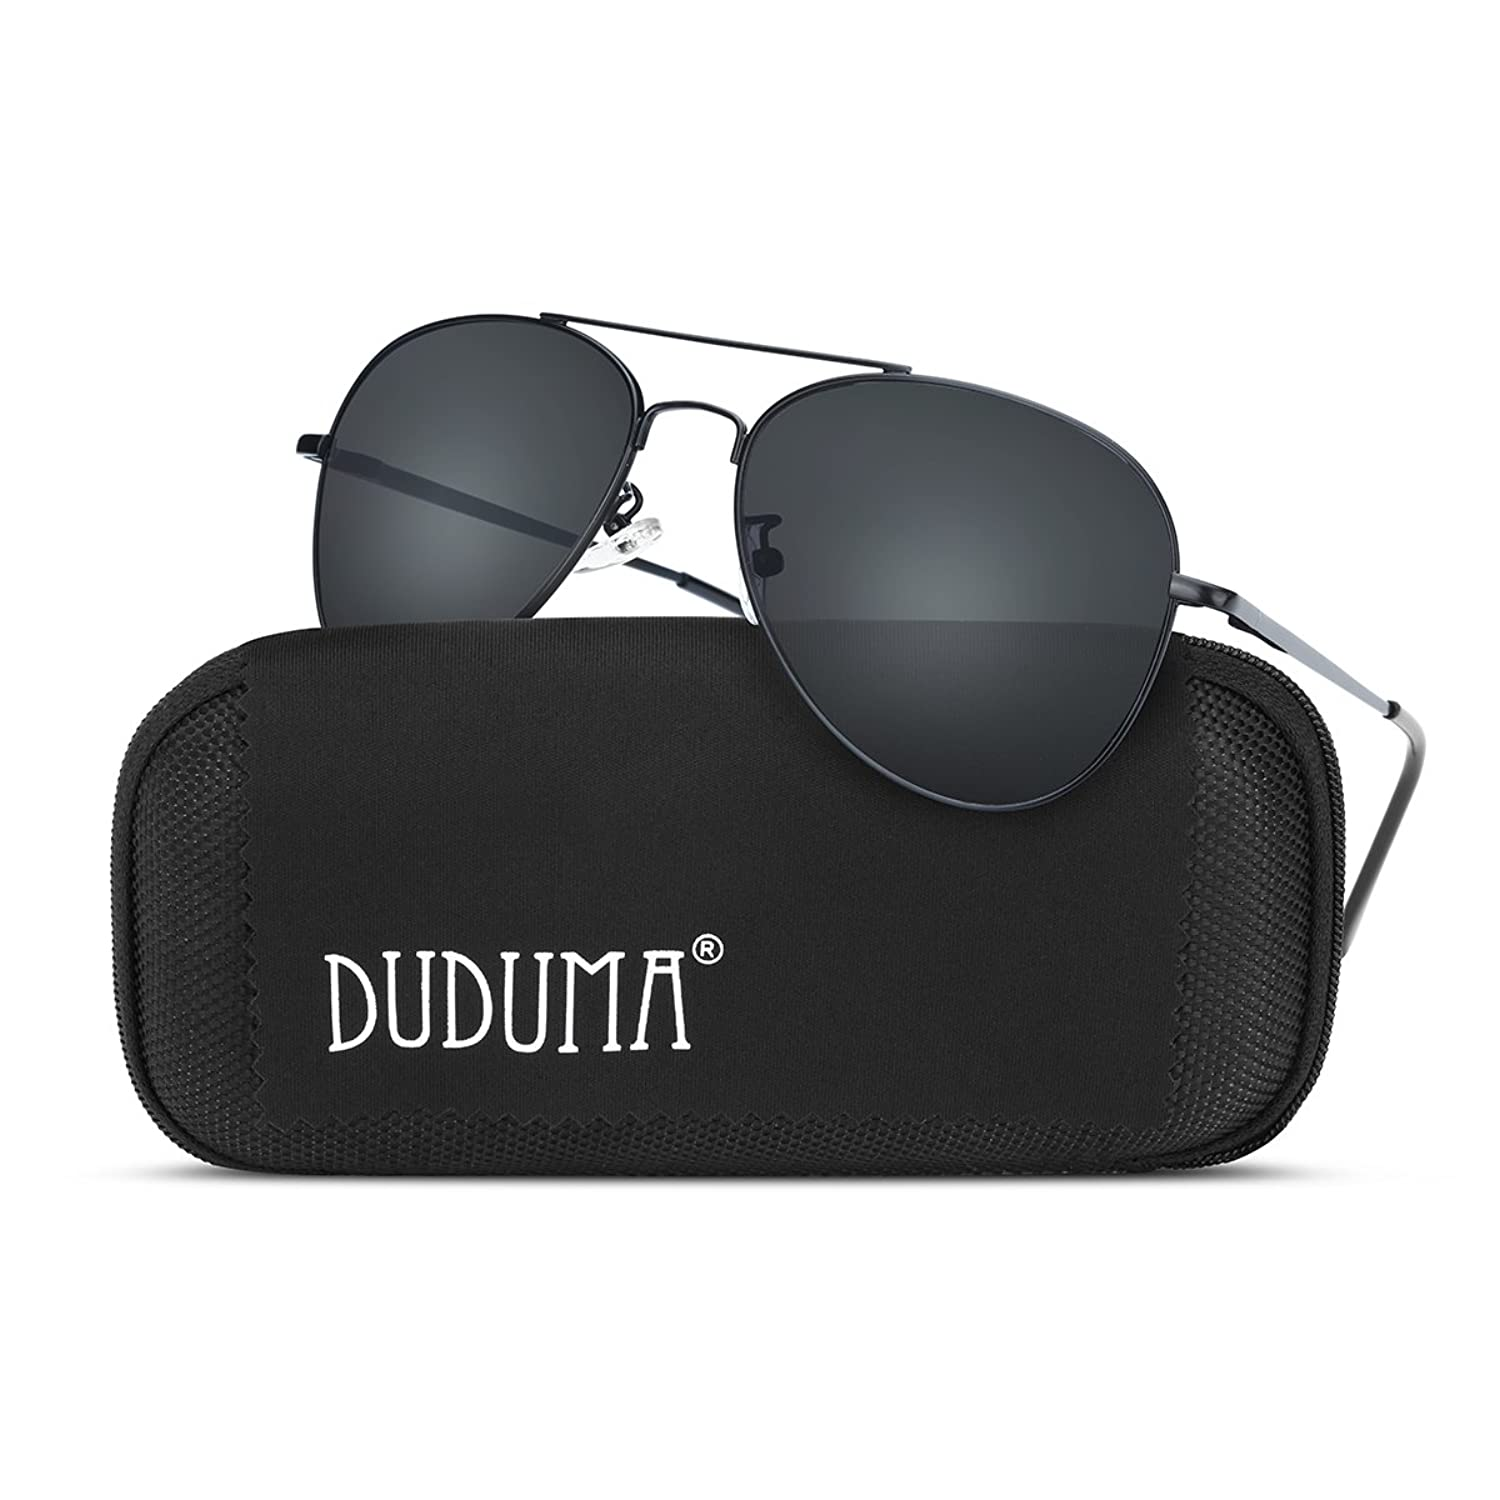 3d33b9657d Duduma Premium Classic Aviator Sunglasses with Metal Frame Uv400 Protection